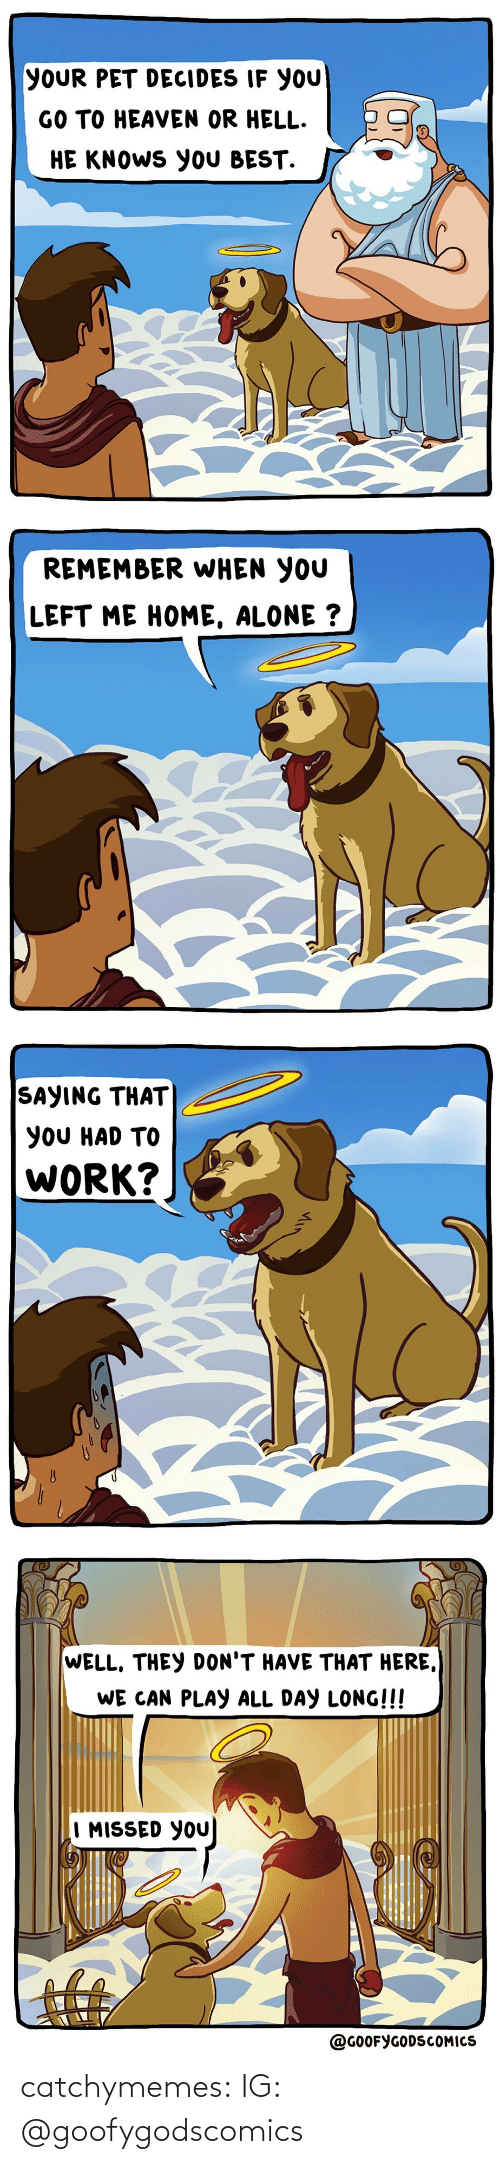 missed: YOUR PET DECIDES IF YOU  GO TO HEAVEN OR HELL.  HE KNOWS YOU BEST.   REMEMBER WHEN YOU  LEFT ME HOME, ALONE ?   SAYING THAT  YOU HAD TO  WORK?   WELL, THEY DON'T HAVE THAT HERE,  WE CAN PLAY ALL DAY LONG!!!  I MISSED YOU  @GOOFYGODSCOMICS catchymemes:  IG: @goofygodscomics